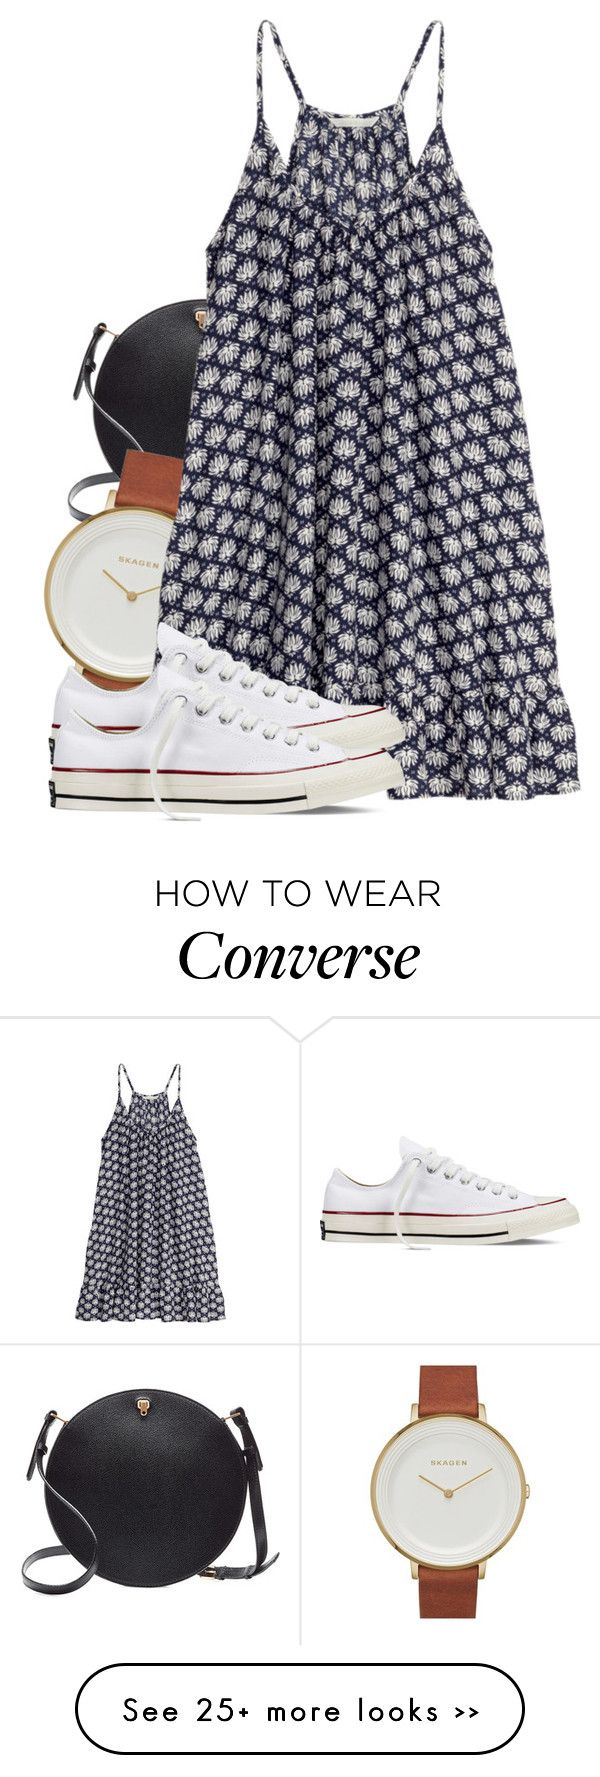 """""""Untitled #493"""" by triskid on Polyvore featuring Valextra, Skagen, H&M and Converse"""